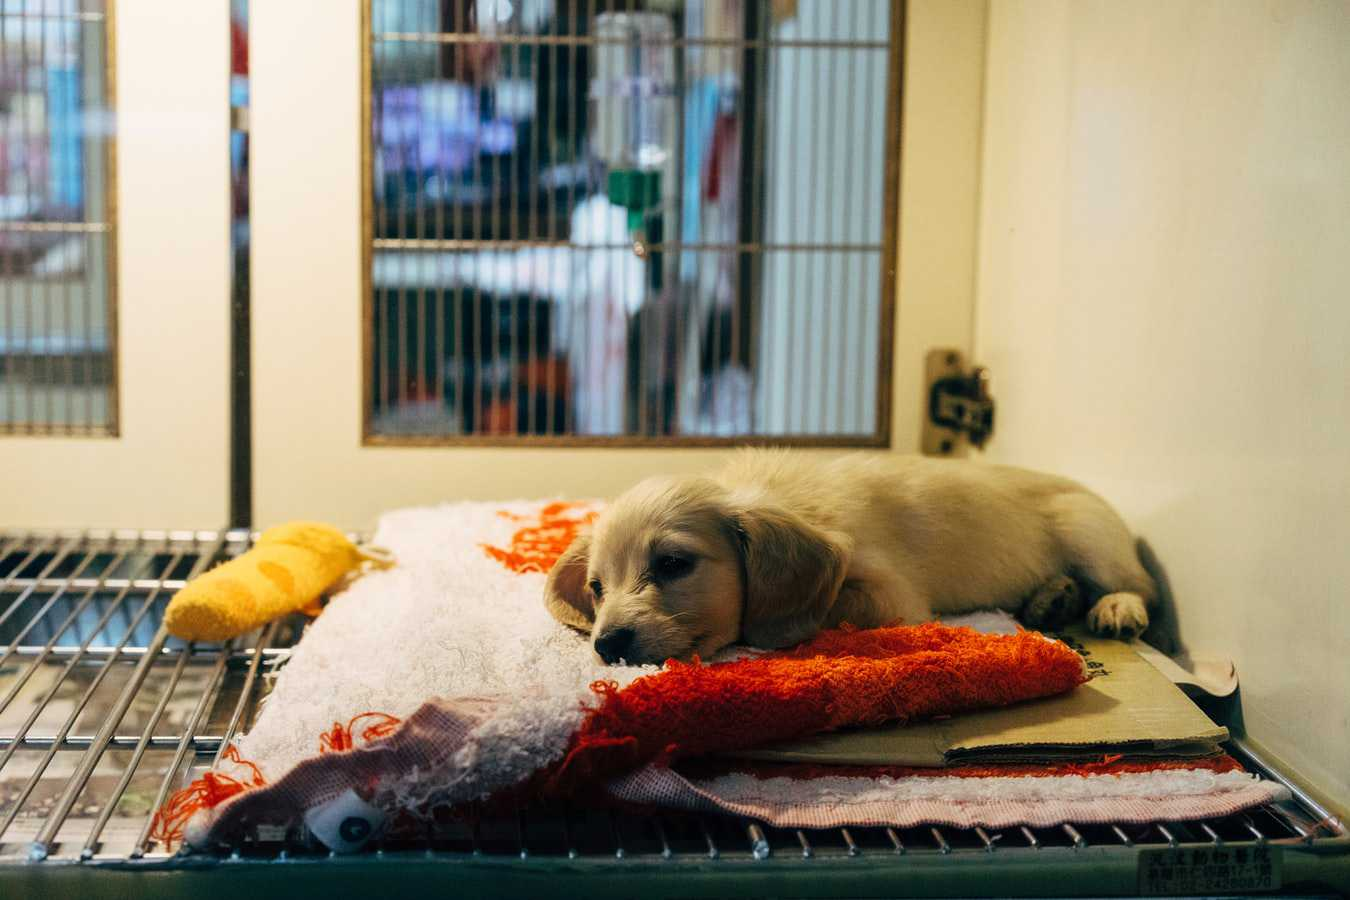 Puppy in a Shelter | Goodwill Car Donations